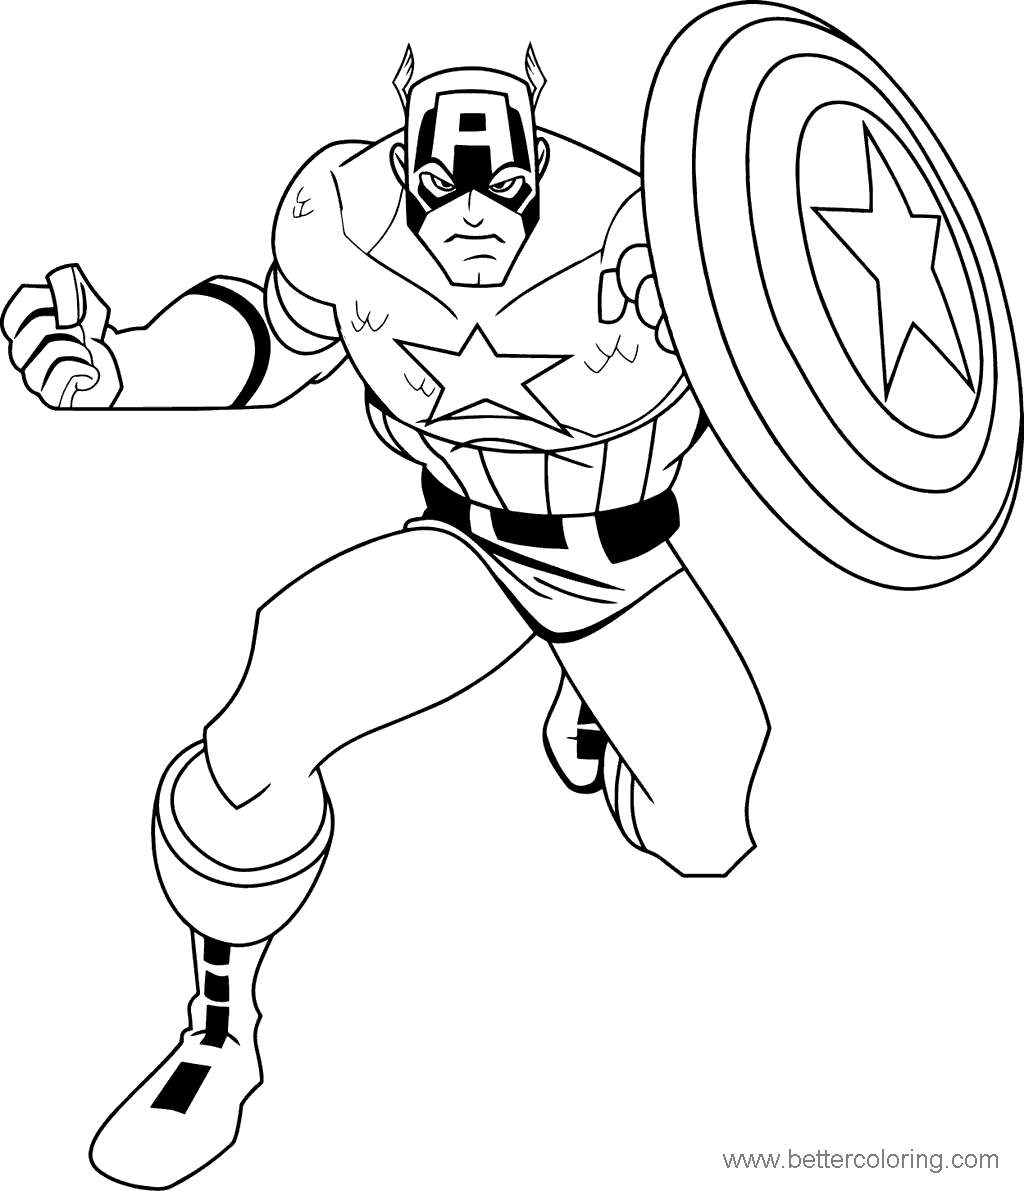 30 FREE MARVEL COLORING PAGES ONLINE PRINTABLE PDF ...